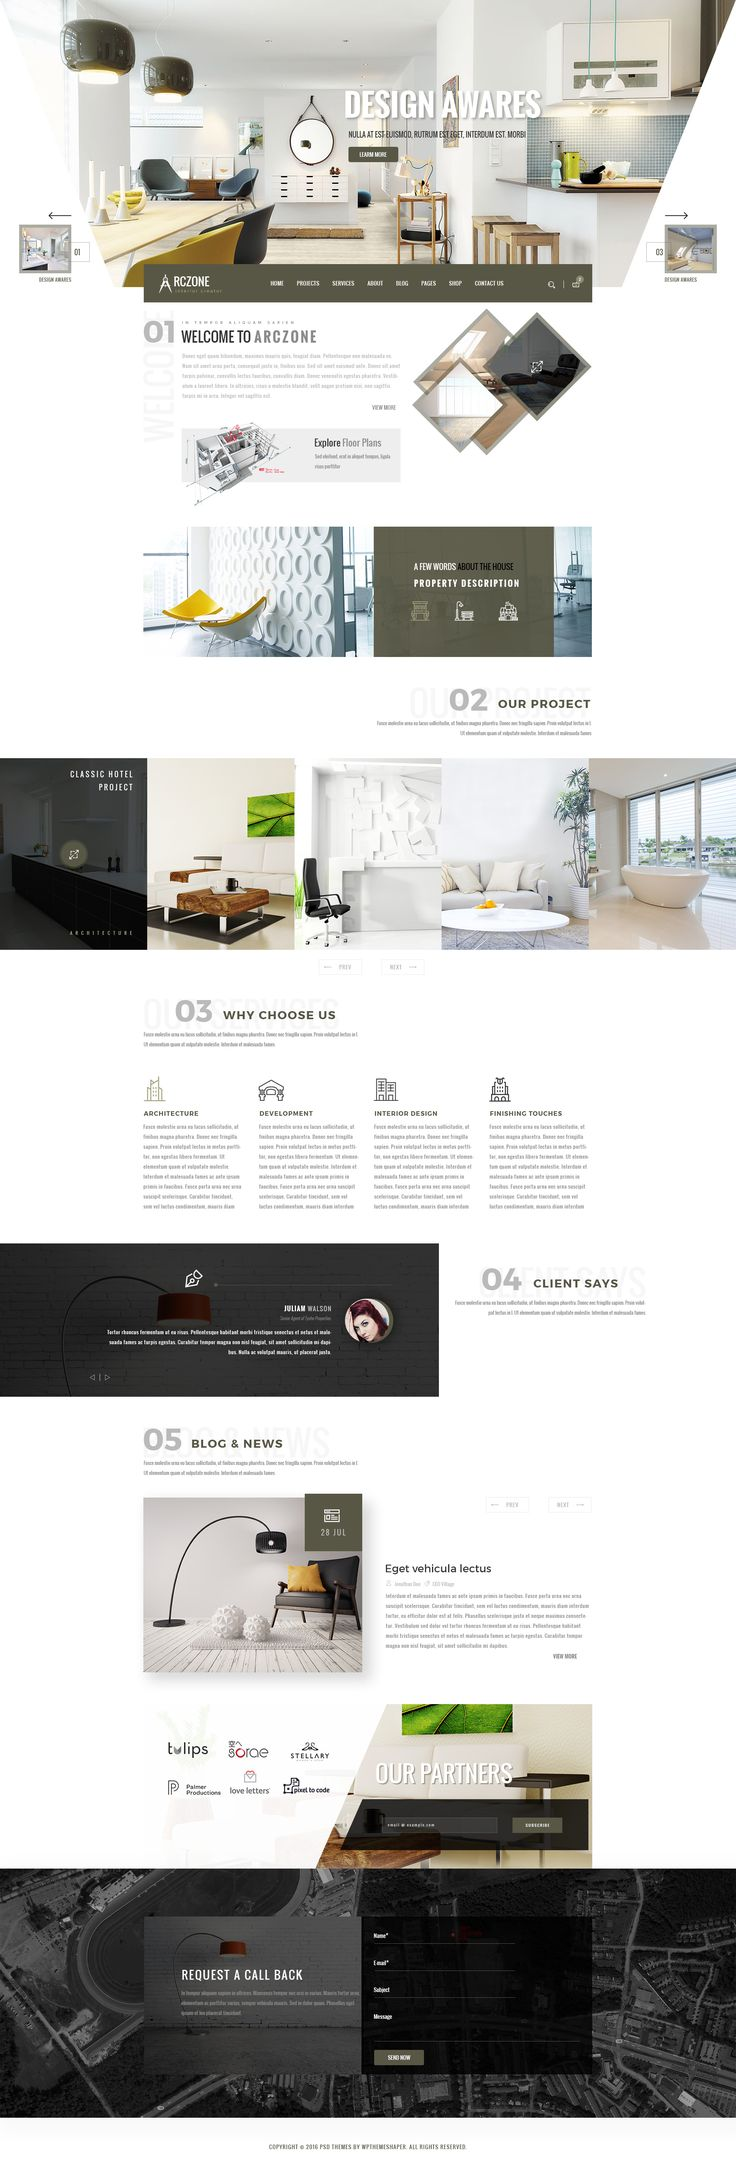 ARCZONE  Interior Design, Decor, Architecture Business Template. U2022 Download  ➝u2026